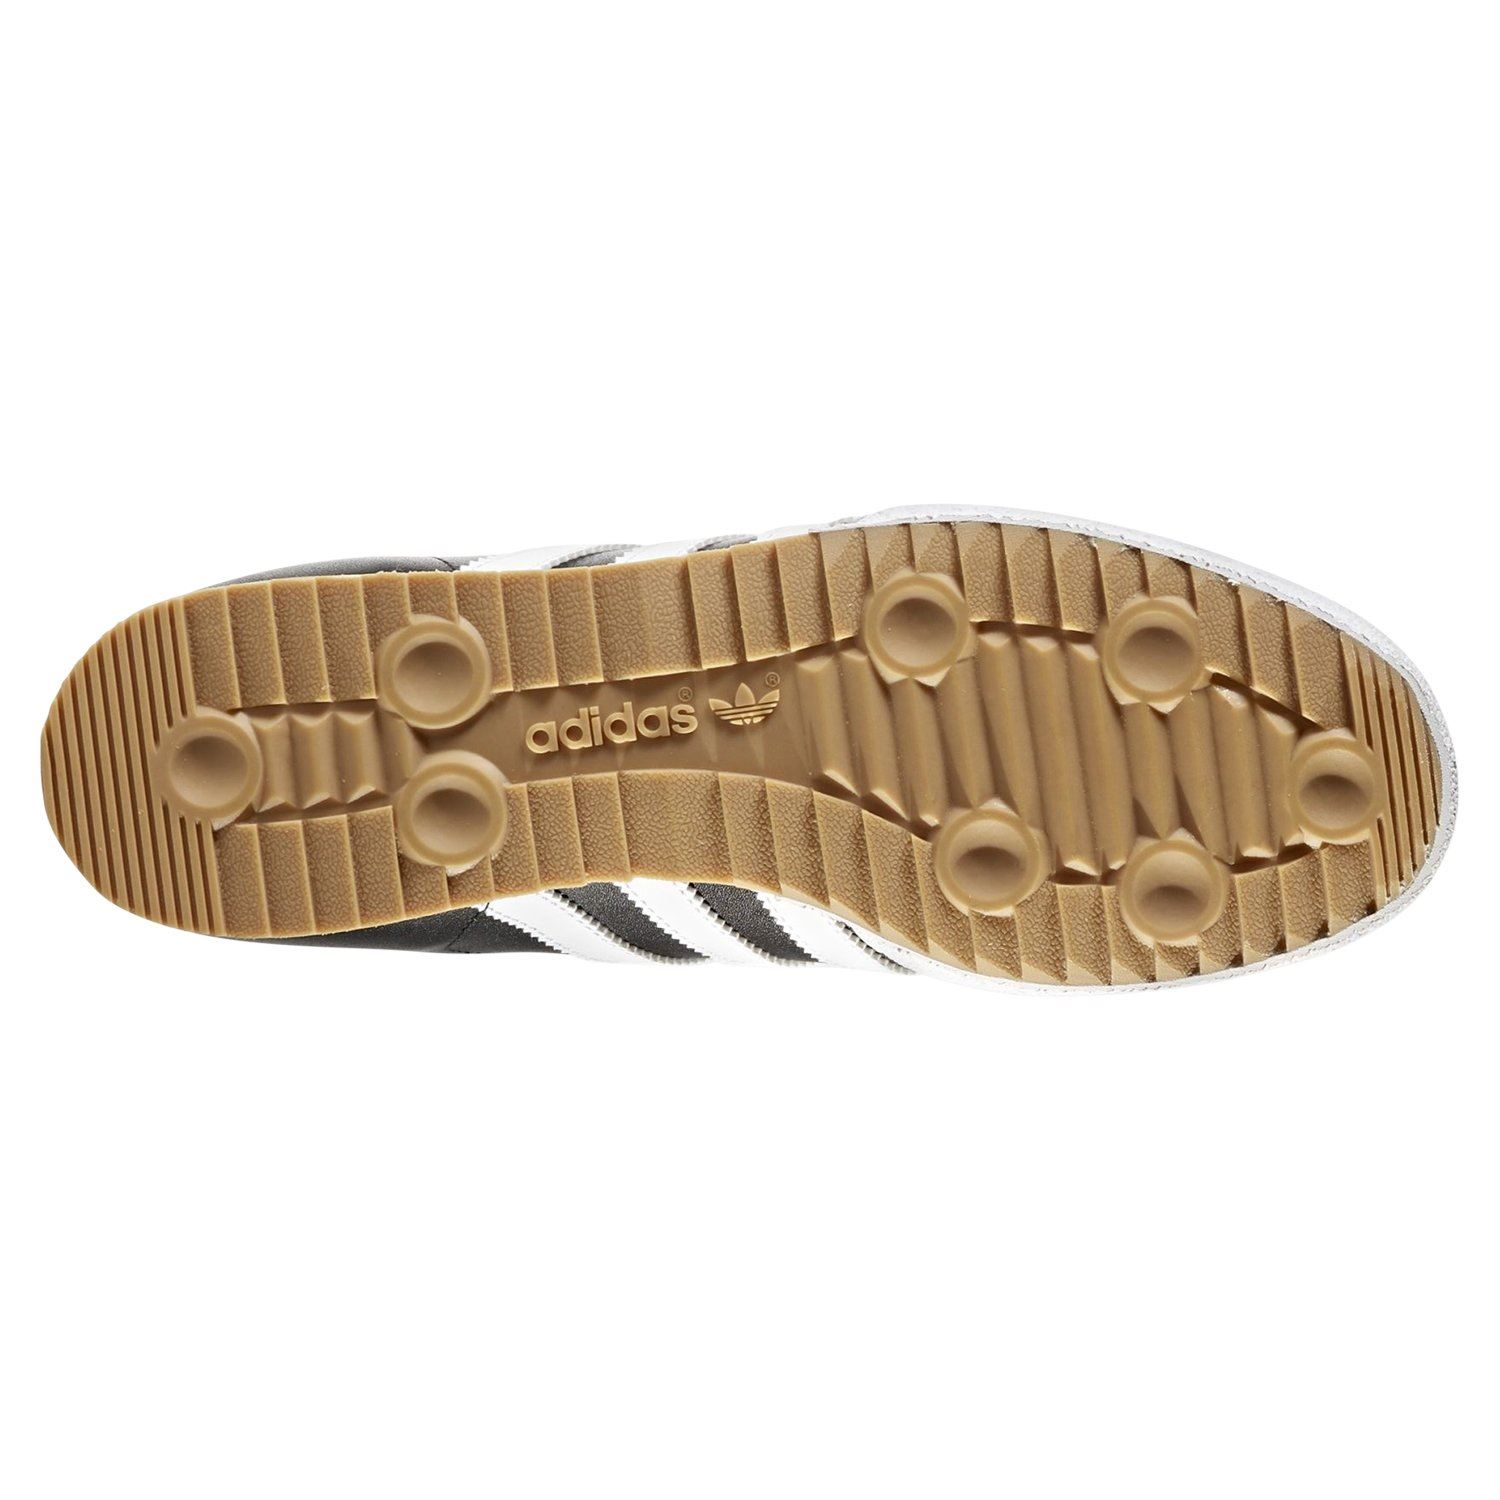 new product 4a8ed e1a03 adidas ORIGINALS MEN S SAMBA SUPER TRAINERS BLACK RETRO CLASSIC LEATHER  SHOES